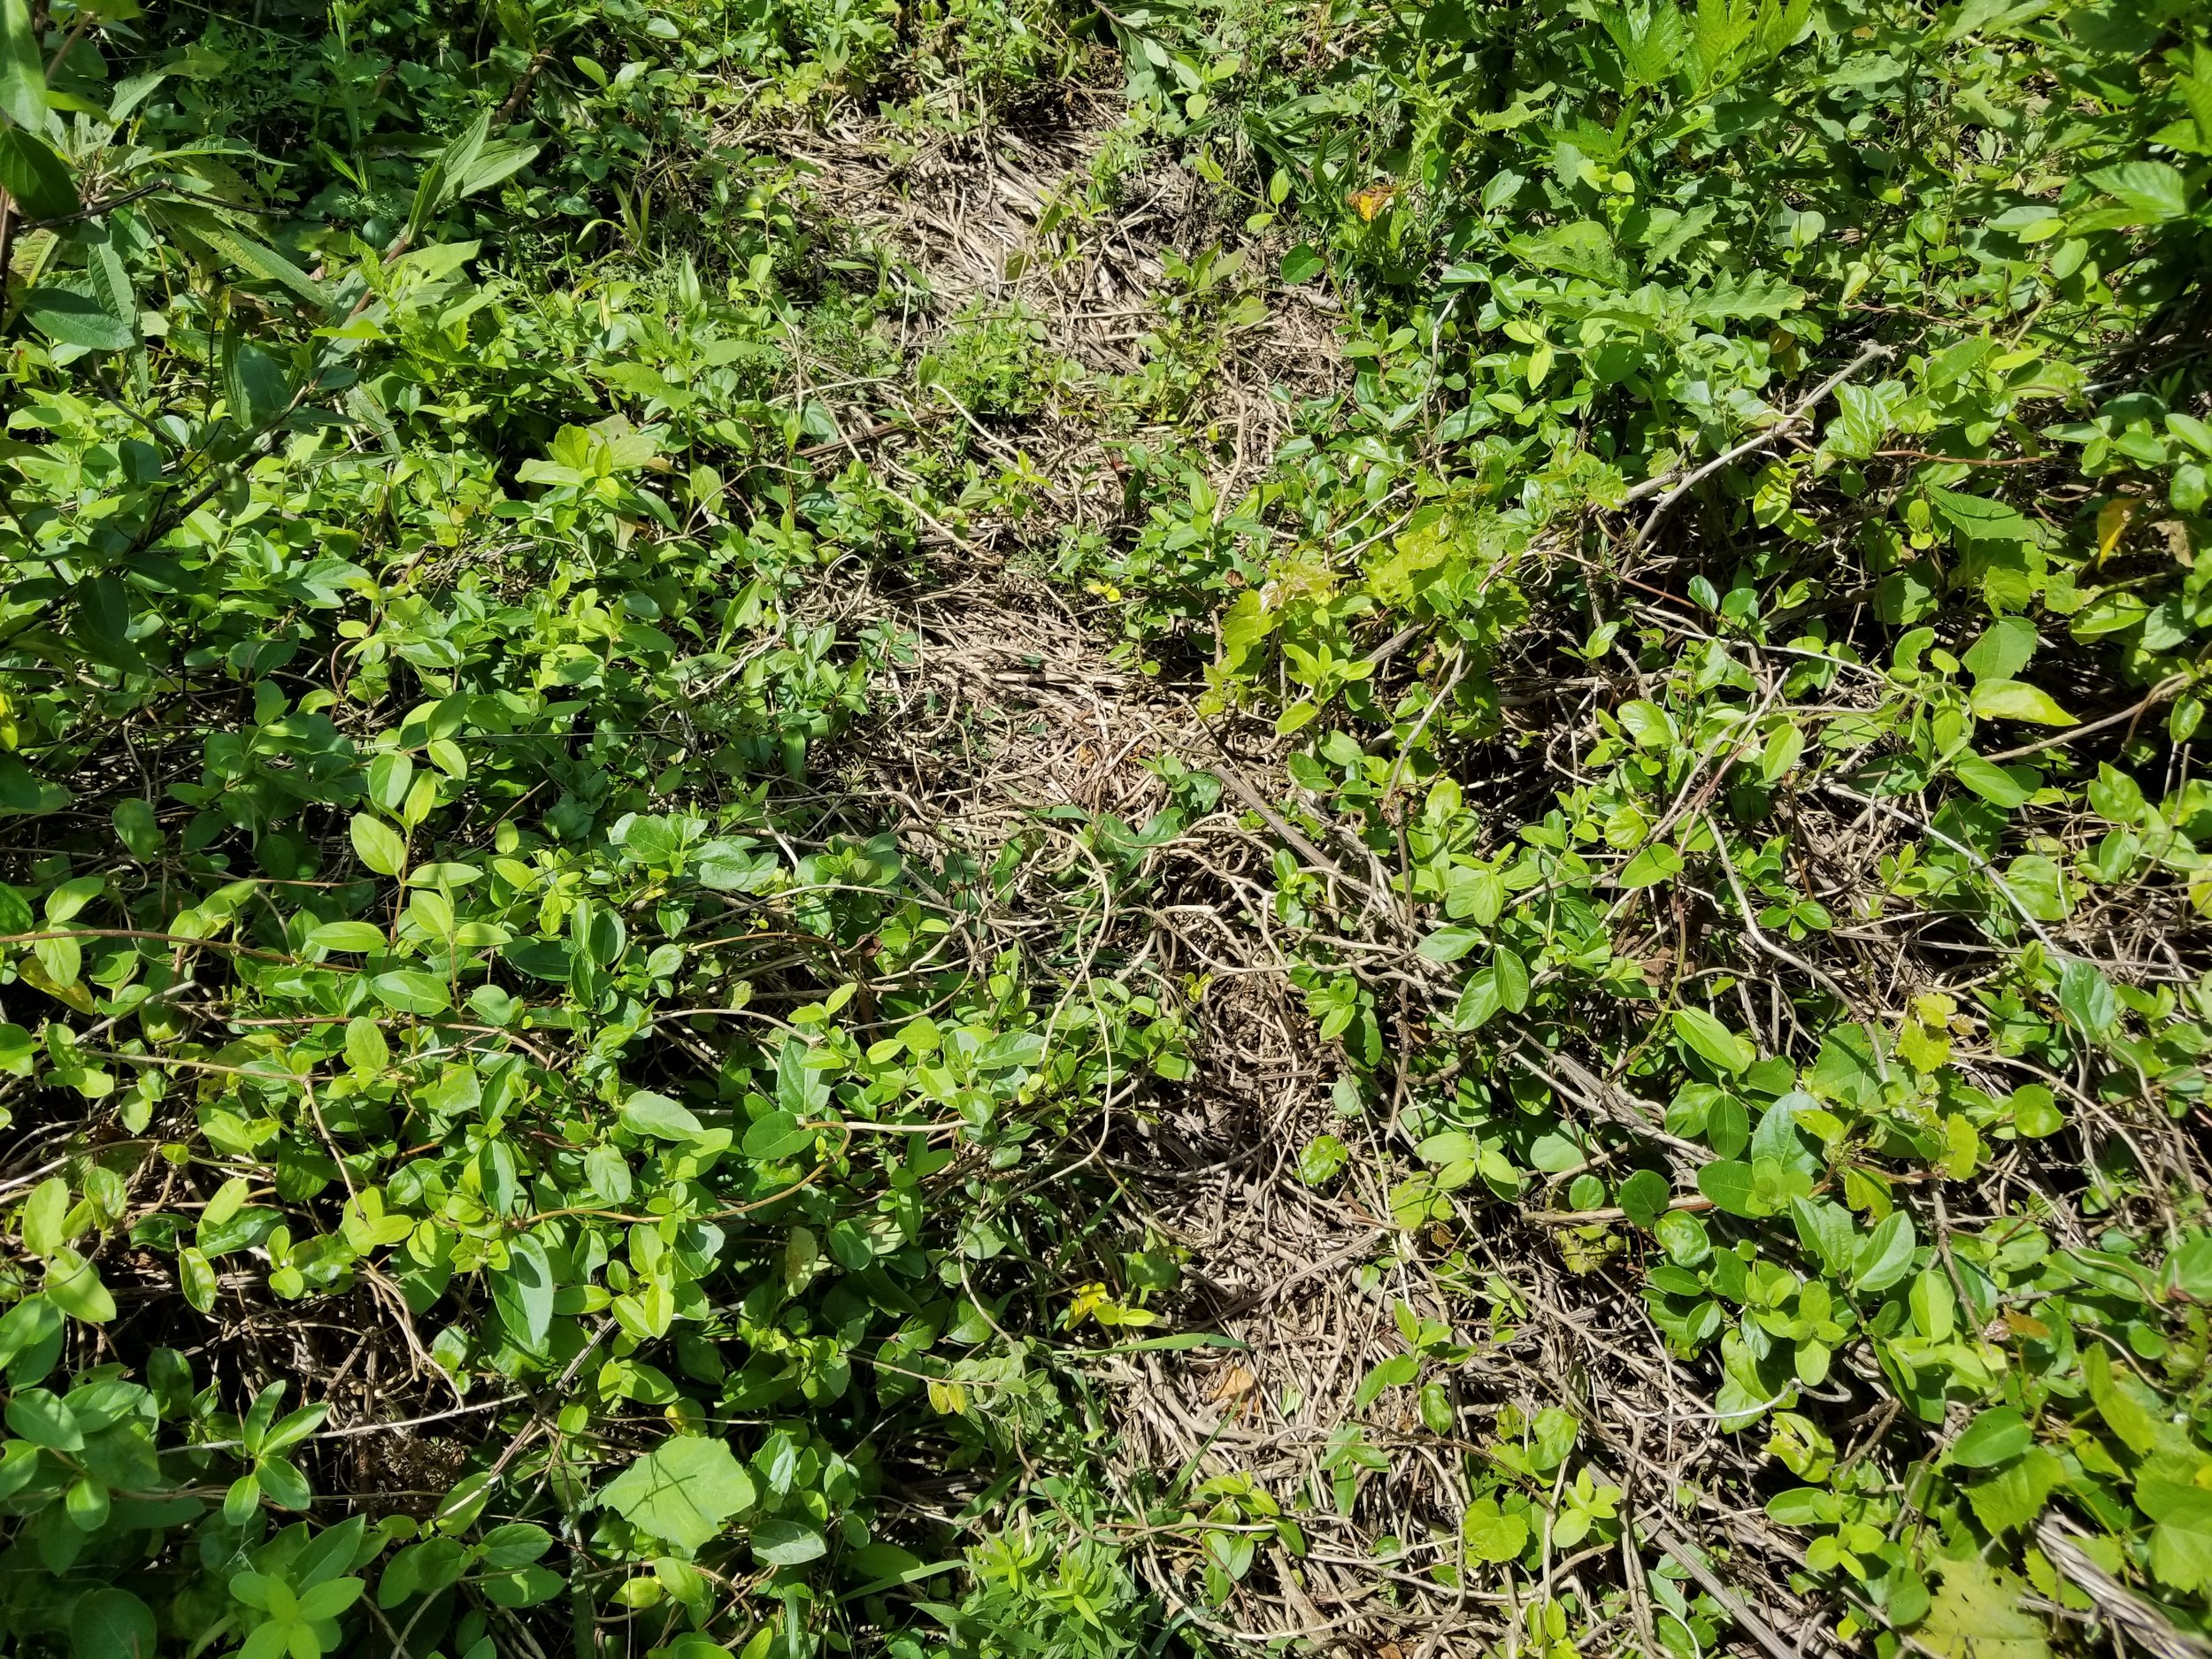 Japanese honeysuckle creating a barrier to native plant growth in an old field. Franklin County, KY.   Image by Jody Thompson